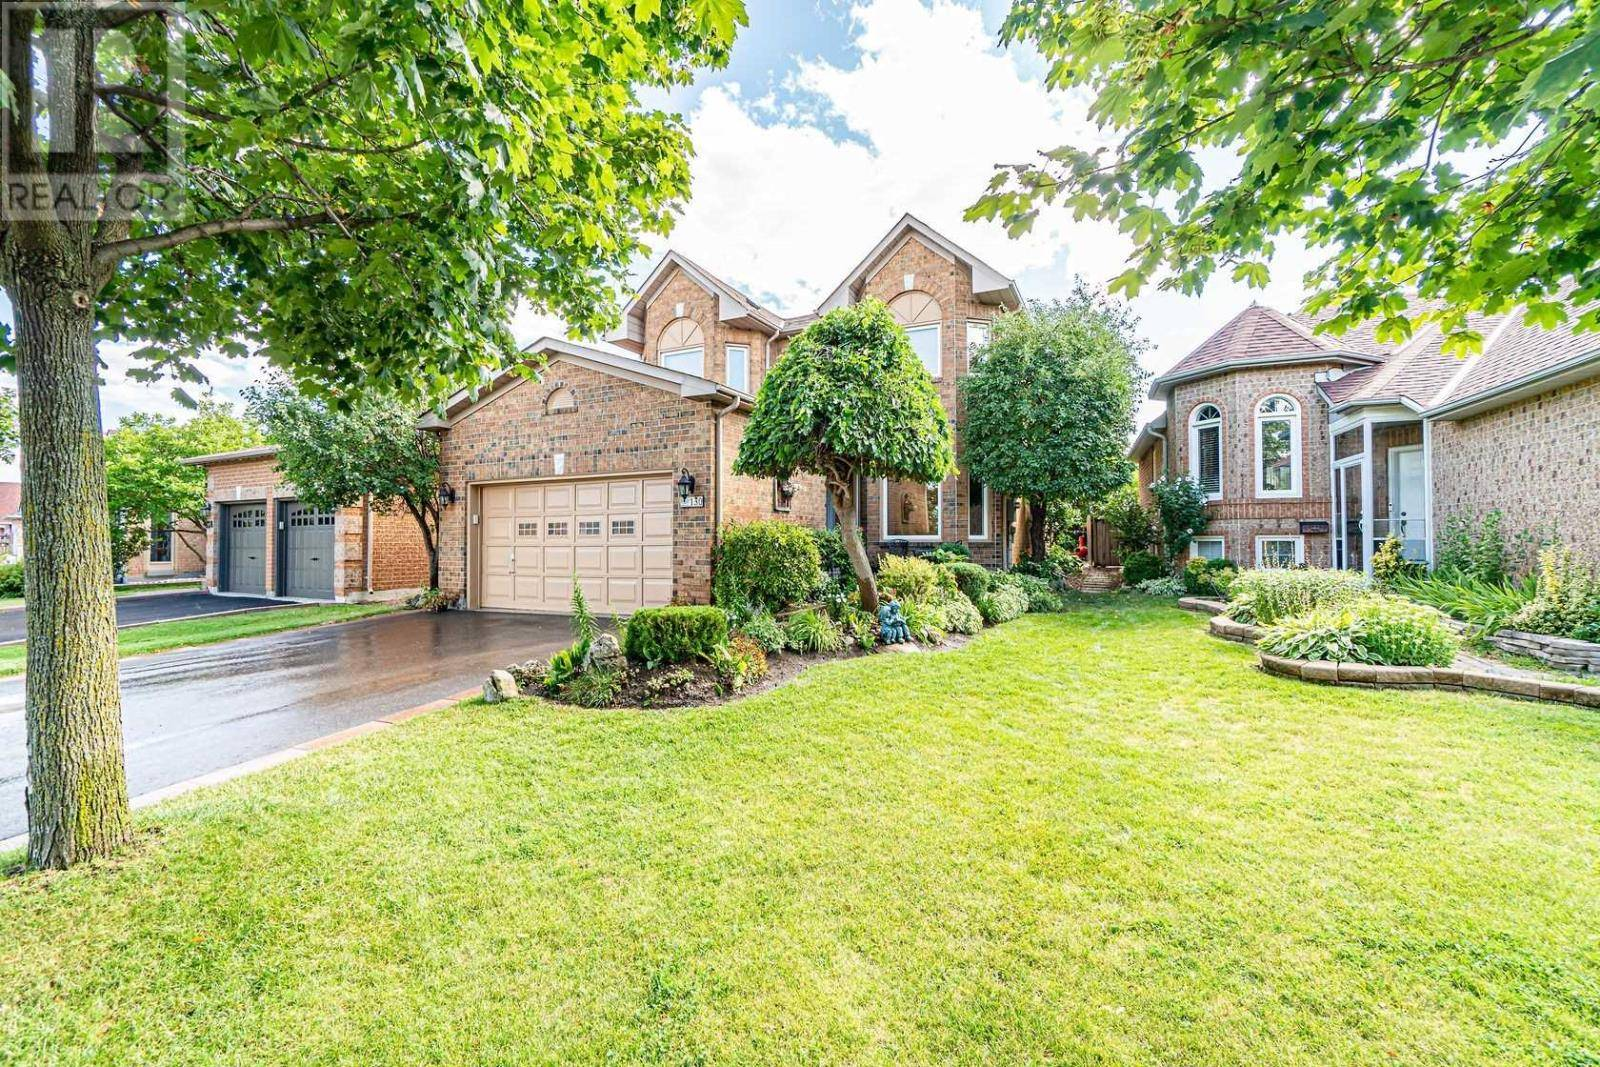 House for sale at 130 Royal Orchard Dr Brampton Ontario - MLS: W4559051